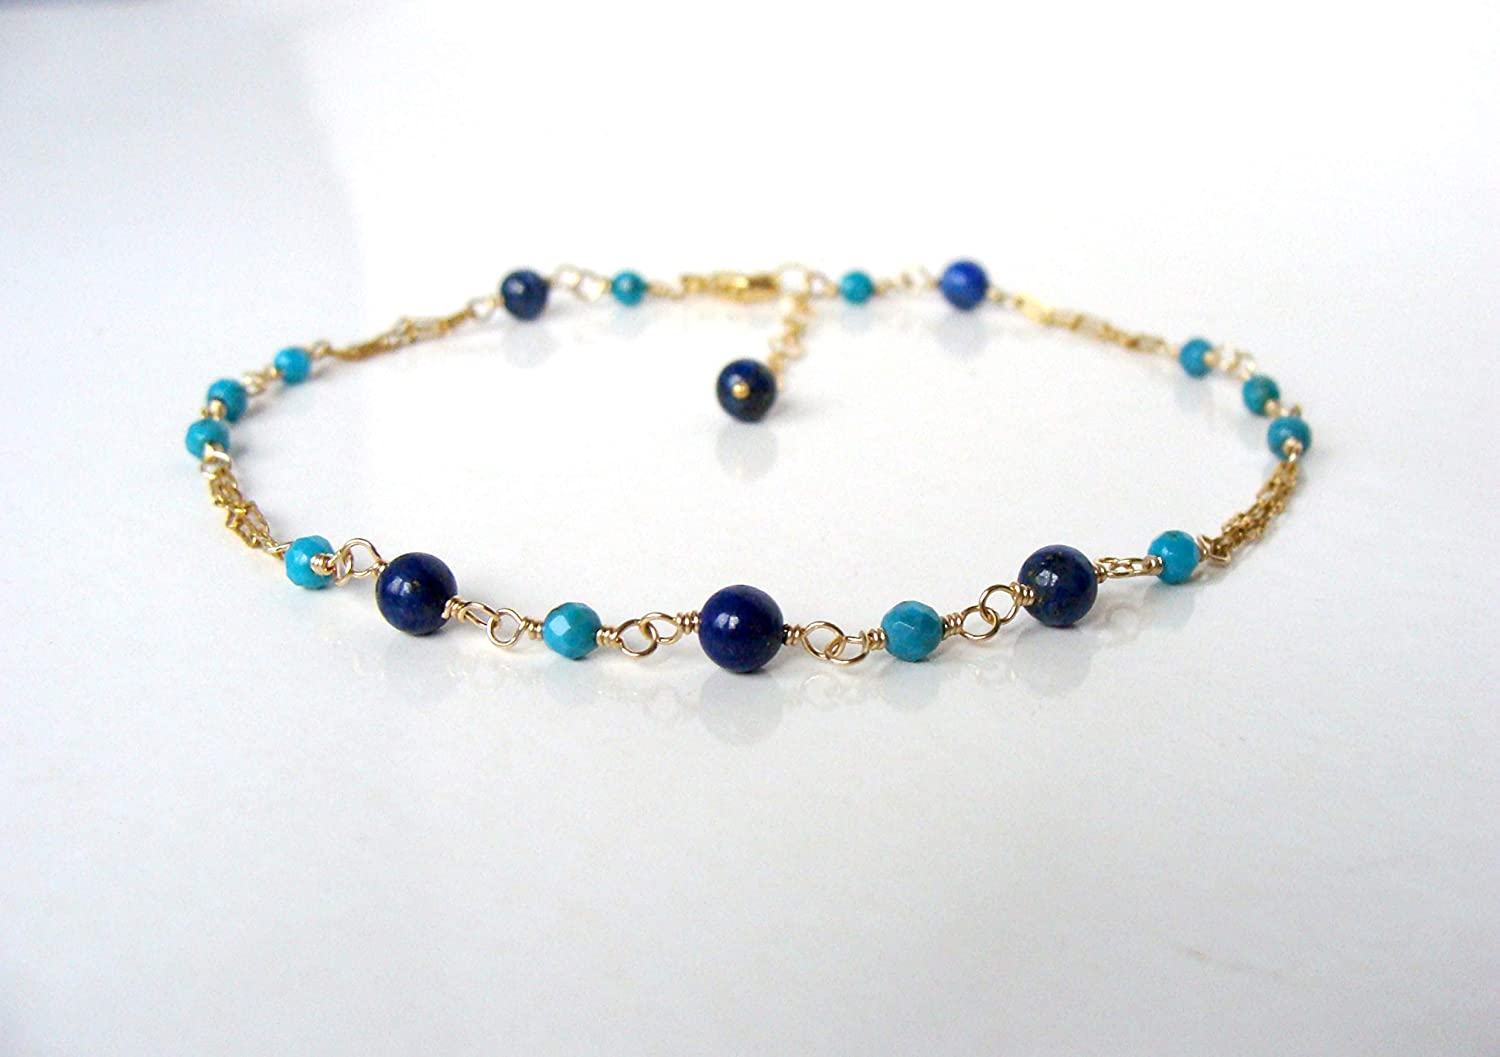 adjustable 9-10 inches Turquoise lapis goldfill anklet dainty beautiful summer resort style handmade by Let Loose Jewelry